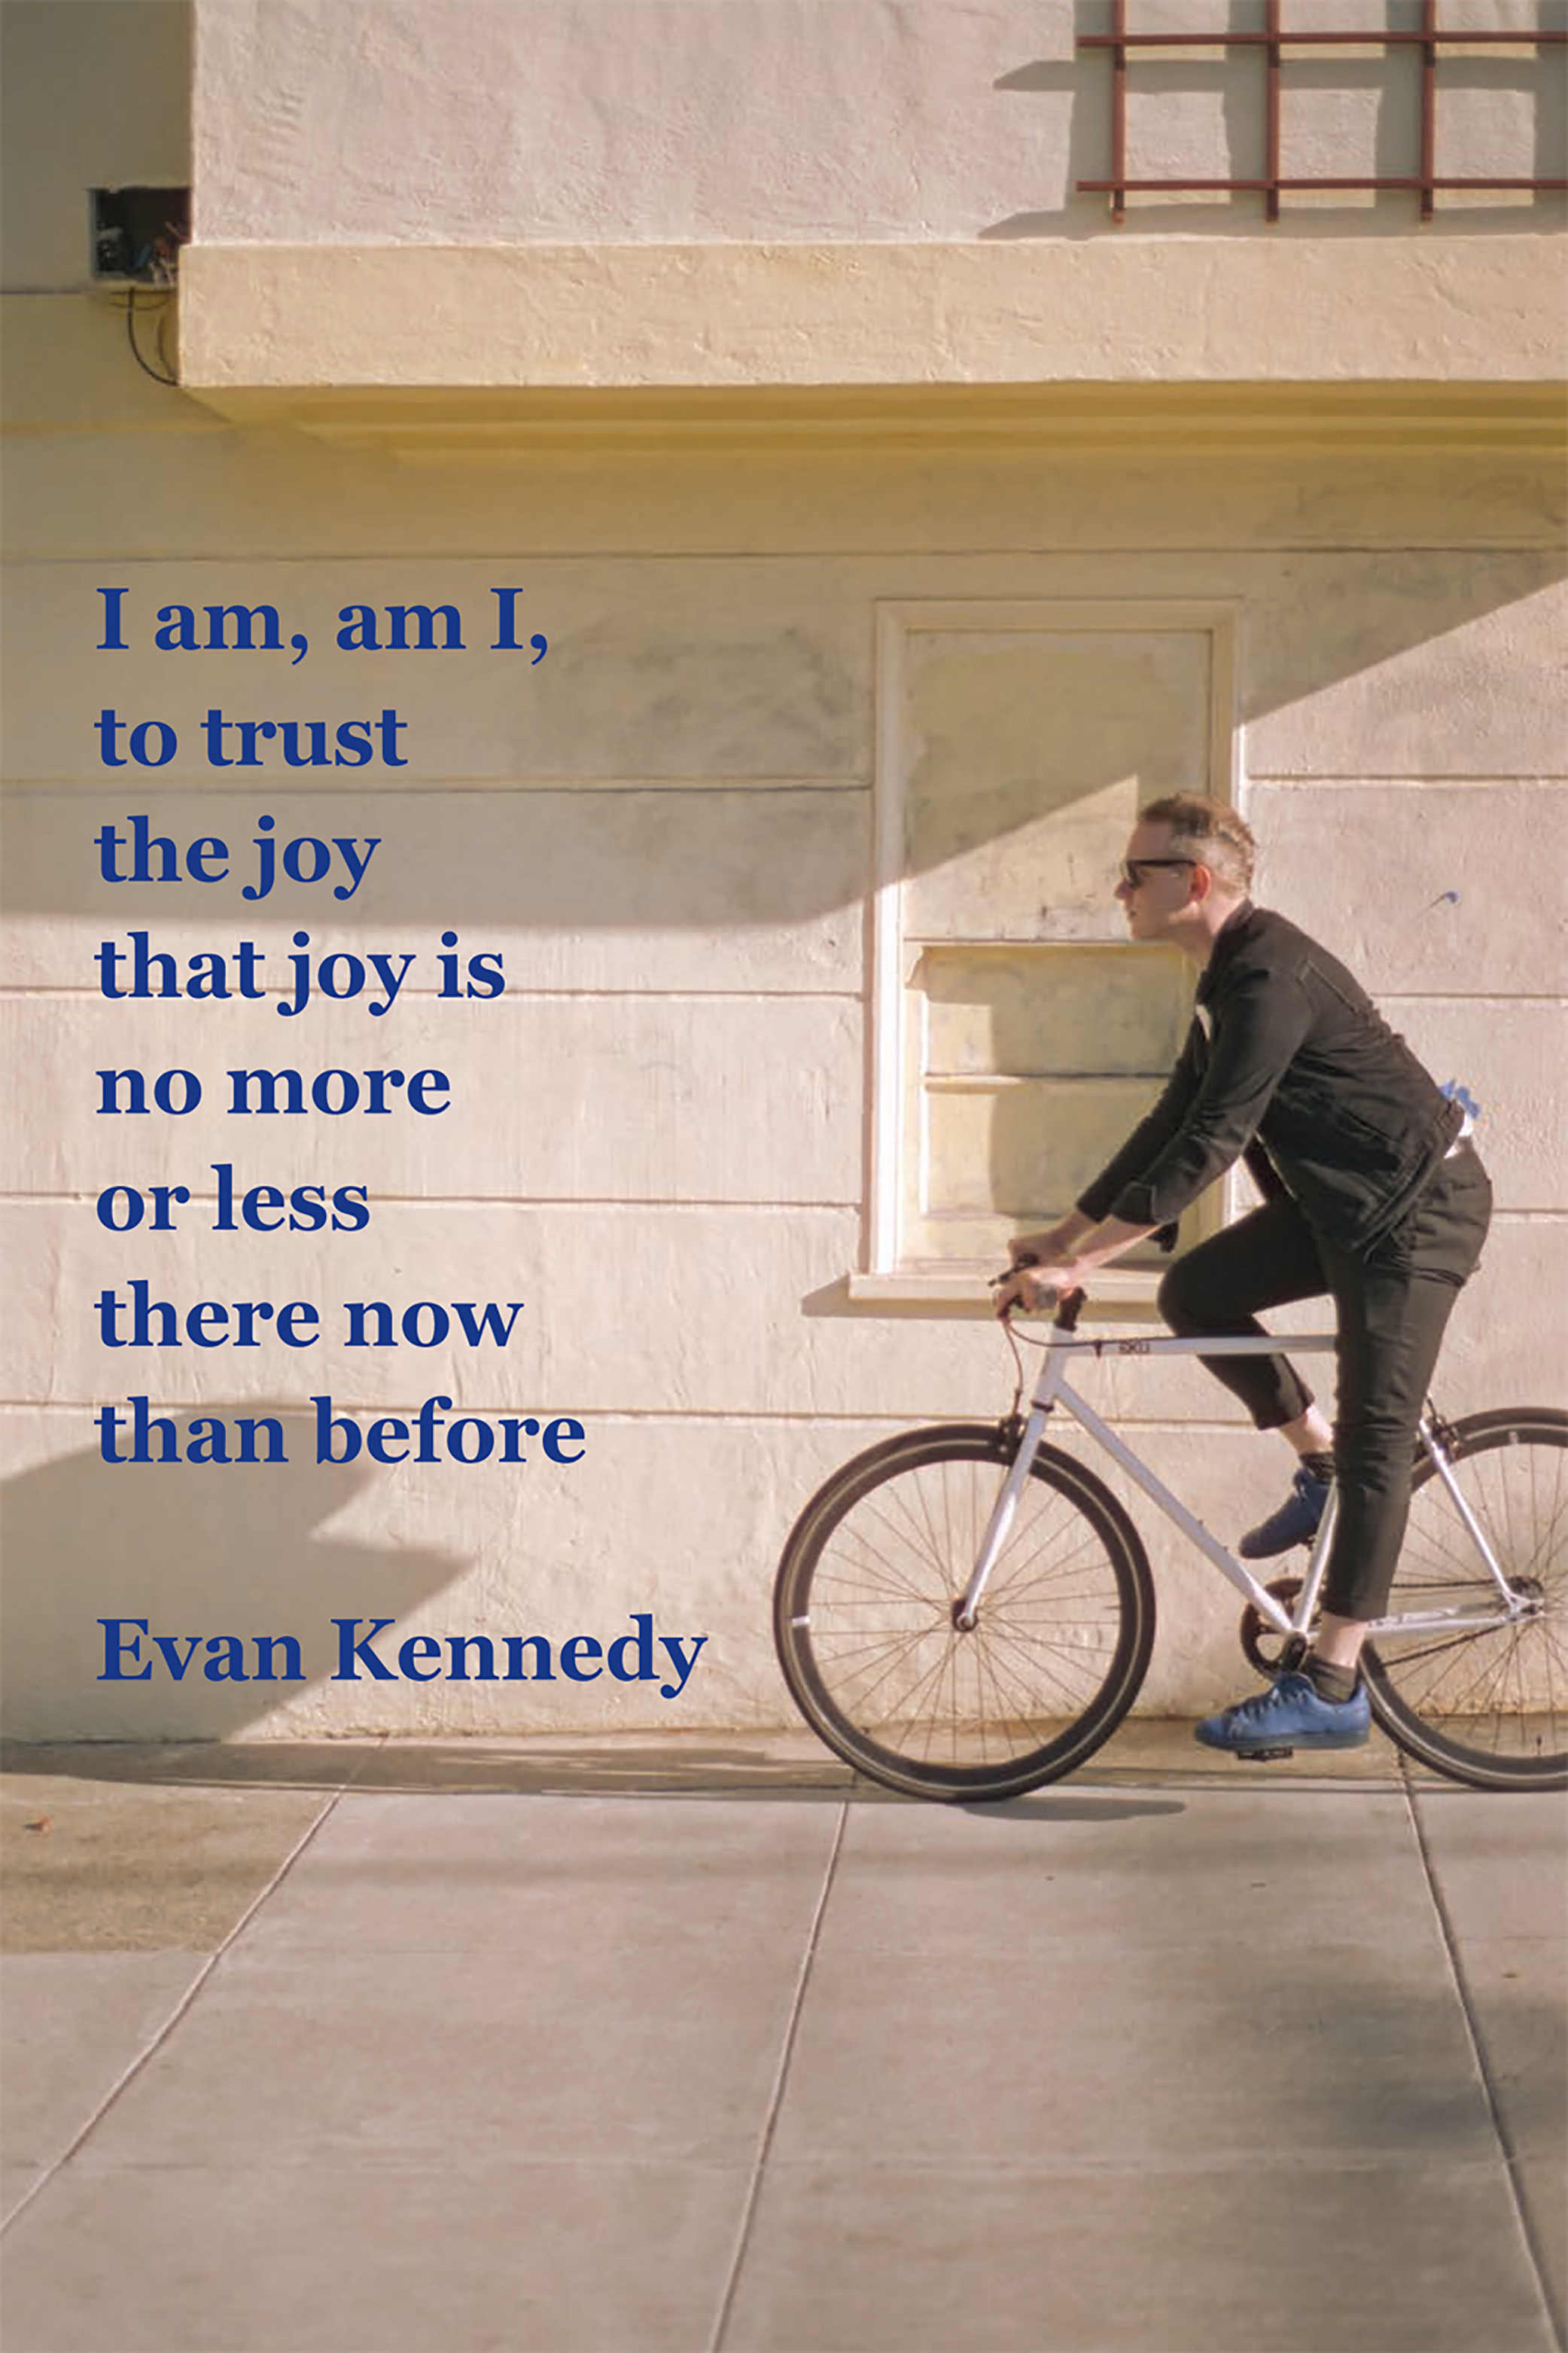 I am, am I, to trust the joy that joy is no more or less there now than before